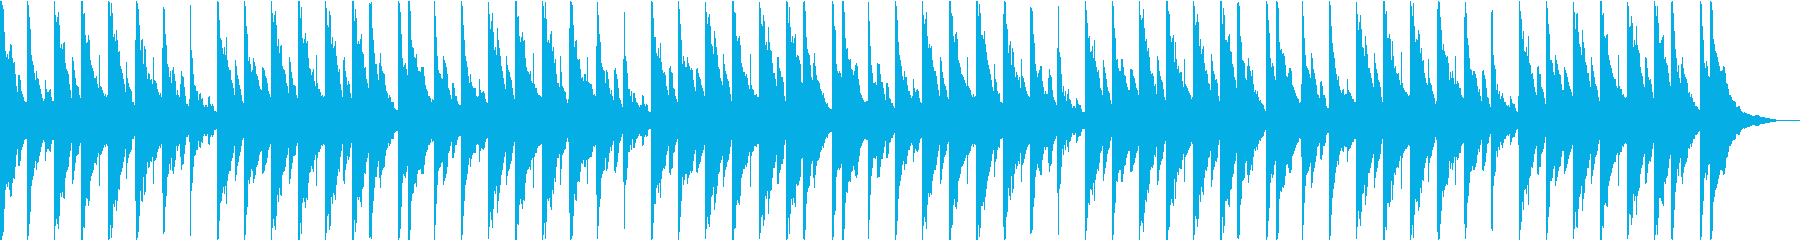 For healing harps, yoga, meditation, cooking shows, etc.'s reproduced waveform